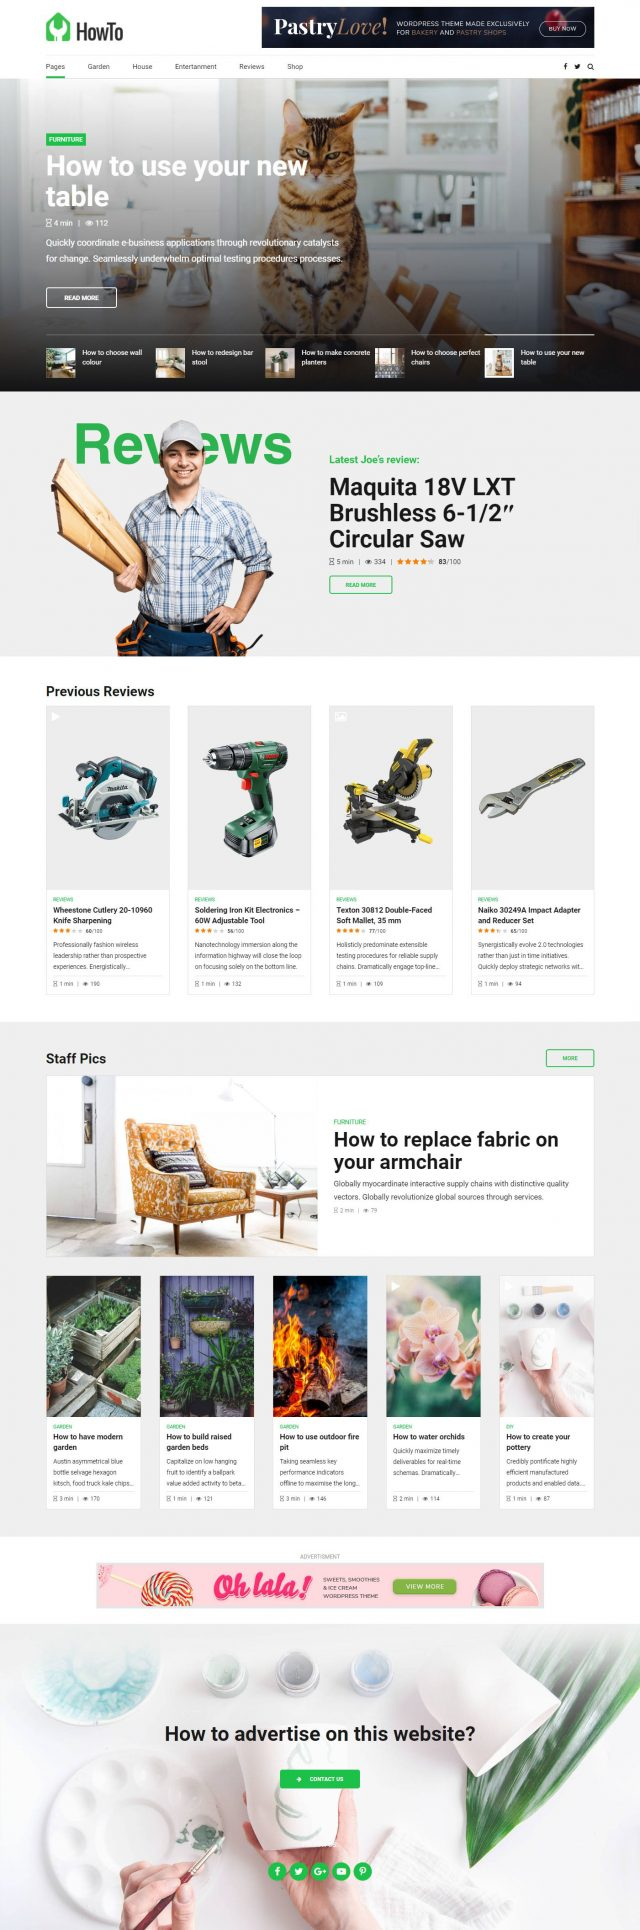 newstar wordpress theme how to homepage 2